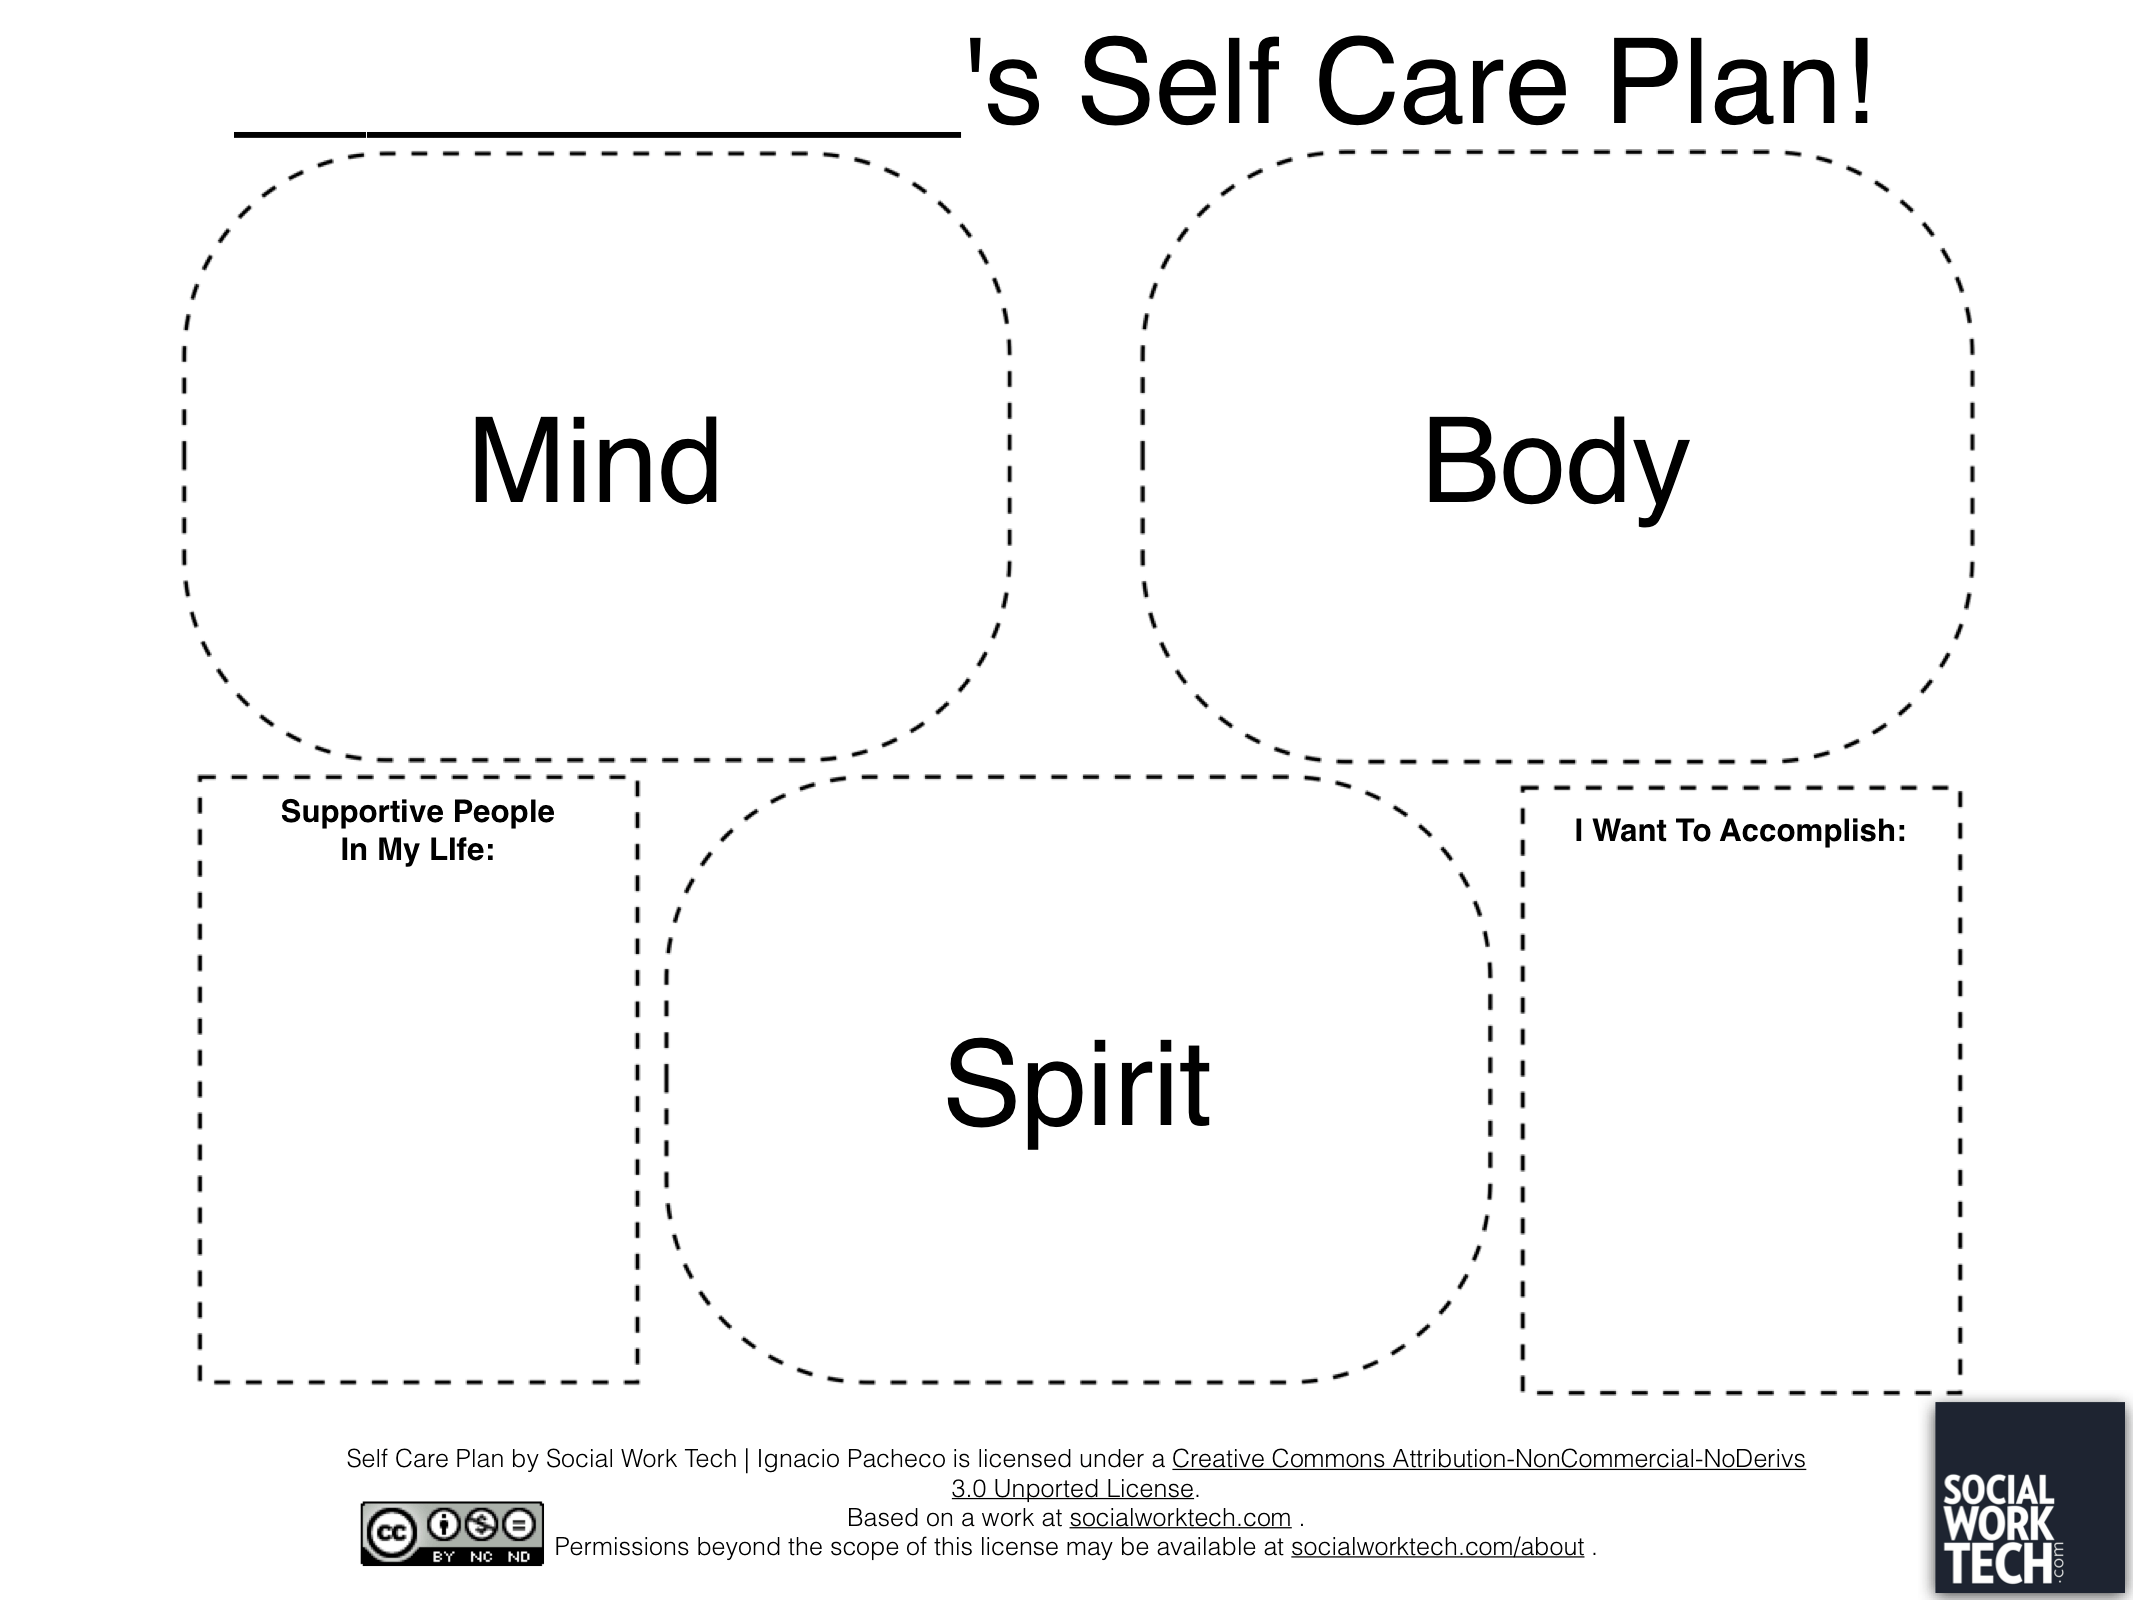 Social Work Tech Making A Self Care Plan On Ipad